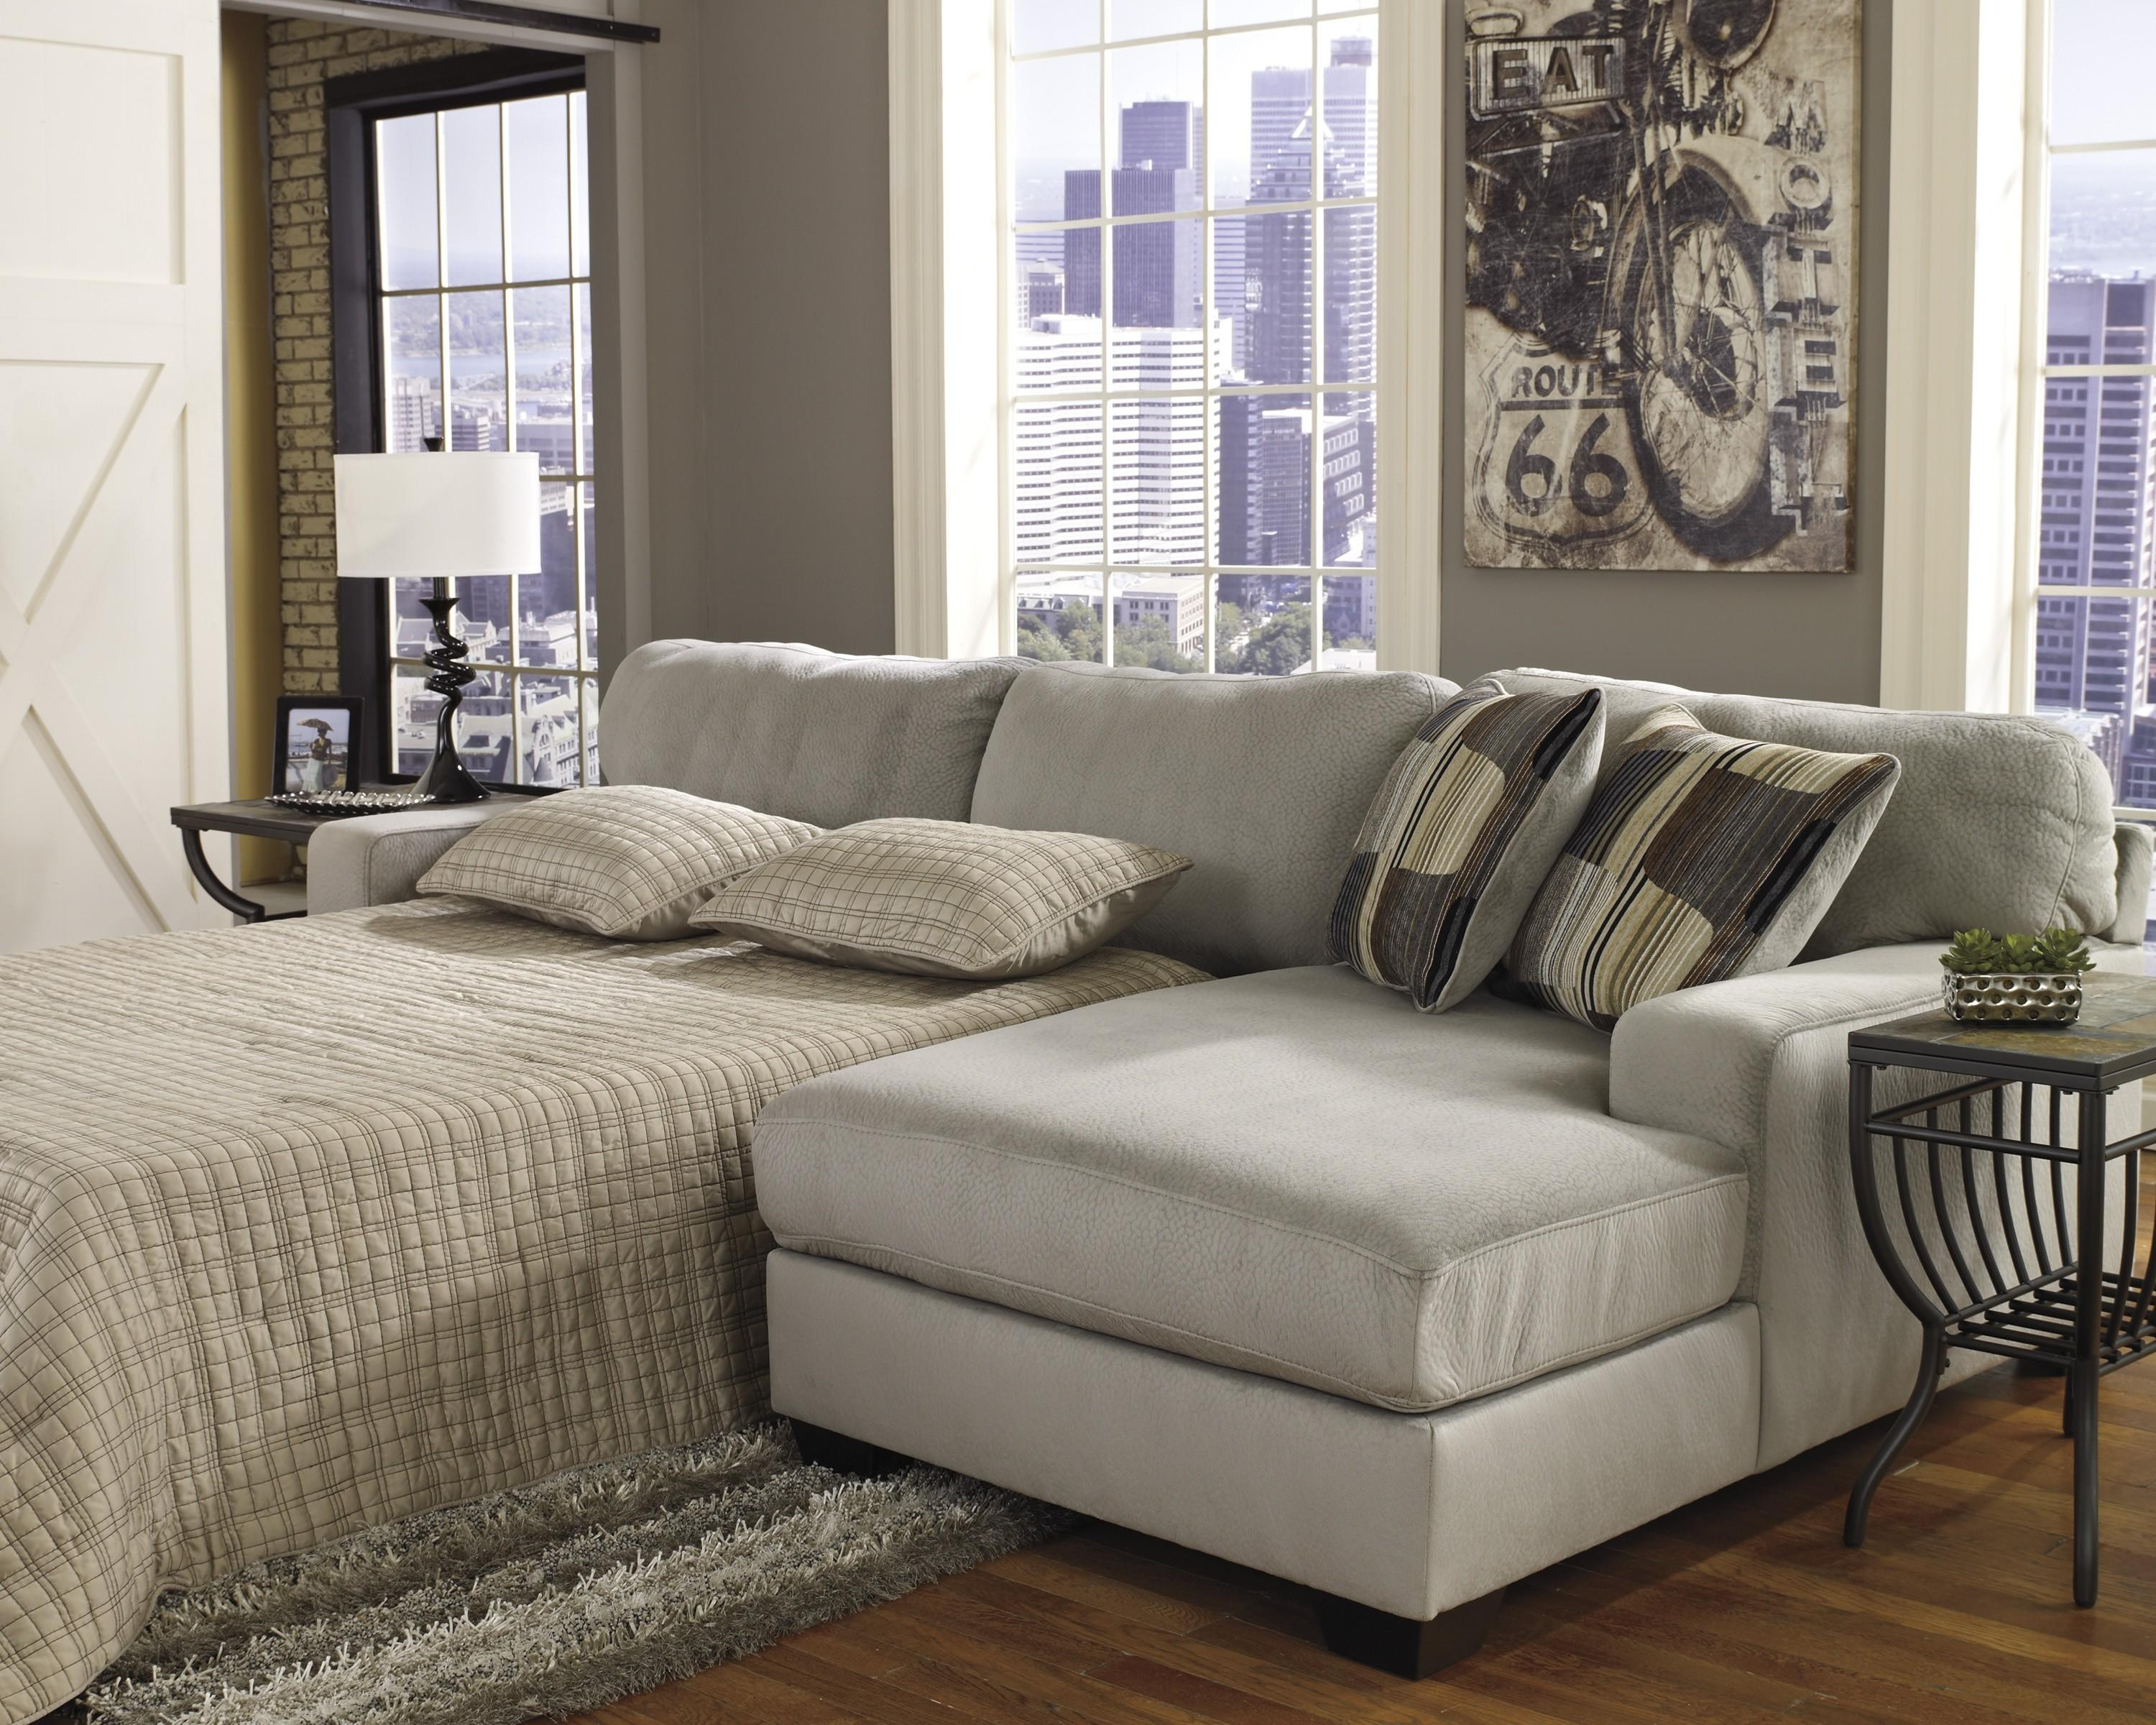 Sofas : Fabulous Sectional Furniture Cheap Sectional Sofas Sofa Inside Queen Size Sofa Bed Sheets (Image 20 of 21)